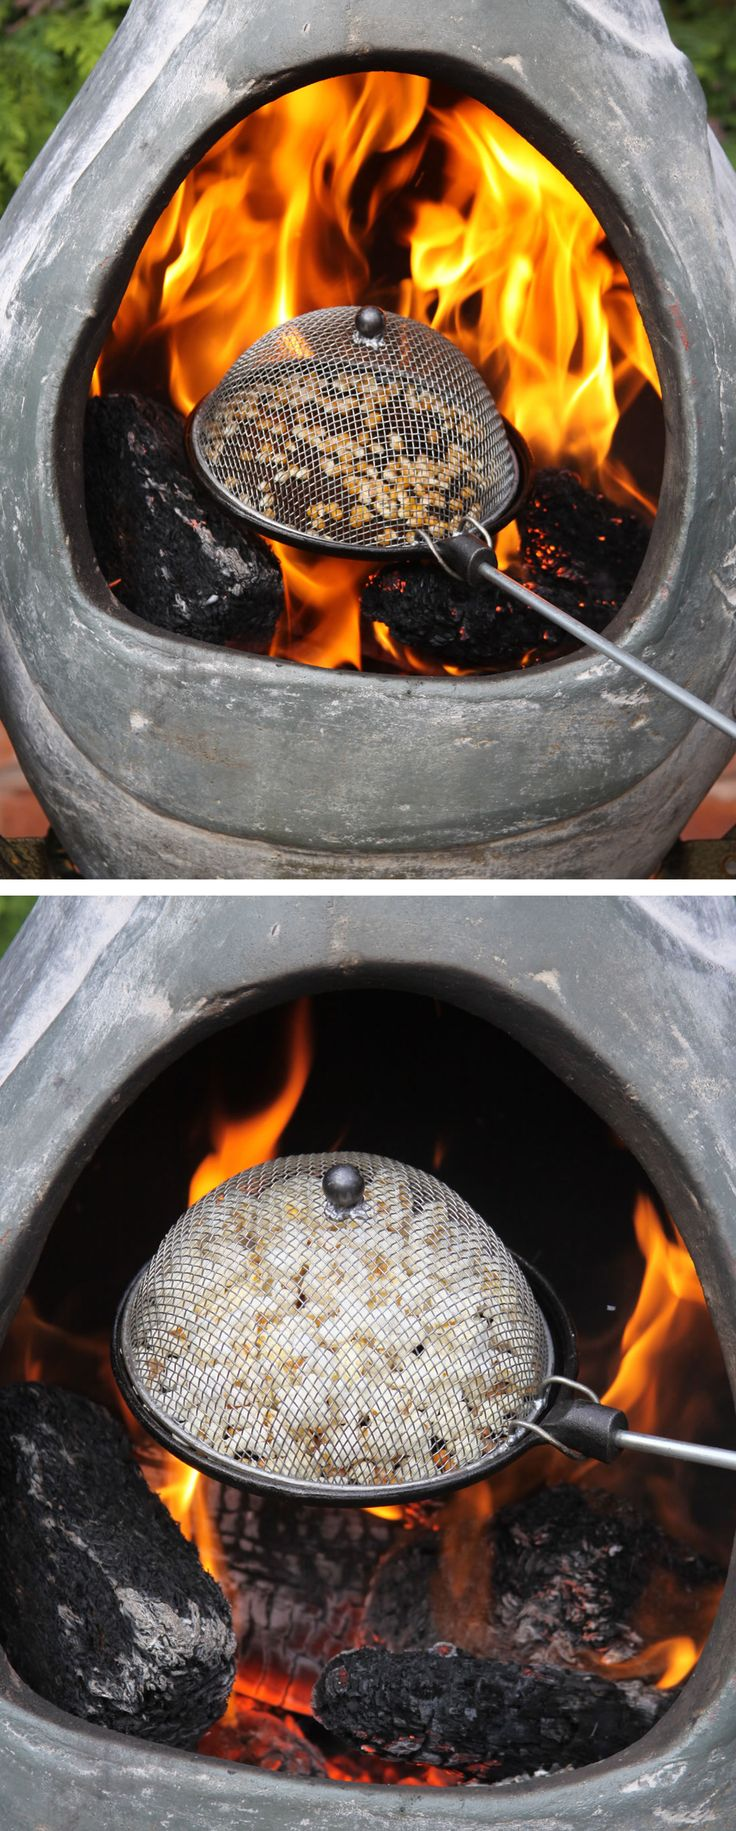 Steel popcorn popper, ideal for BBQs, chimineas or fire bowls. http://www.worldstores.co.uk/p/Steel_Popcorn_Popper_For_Frying_Pan.htm